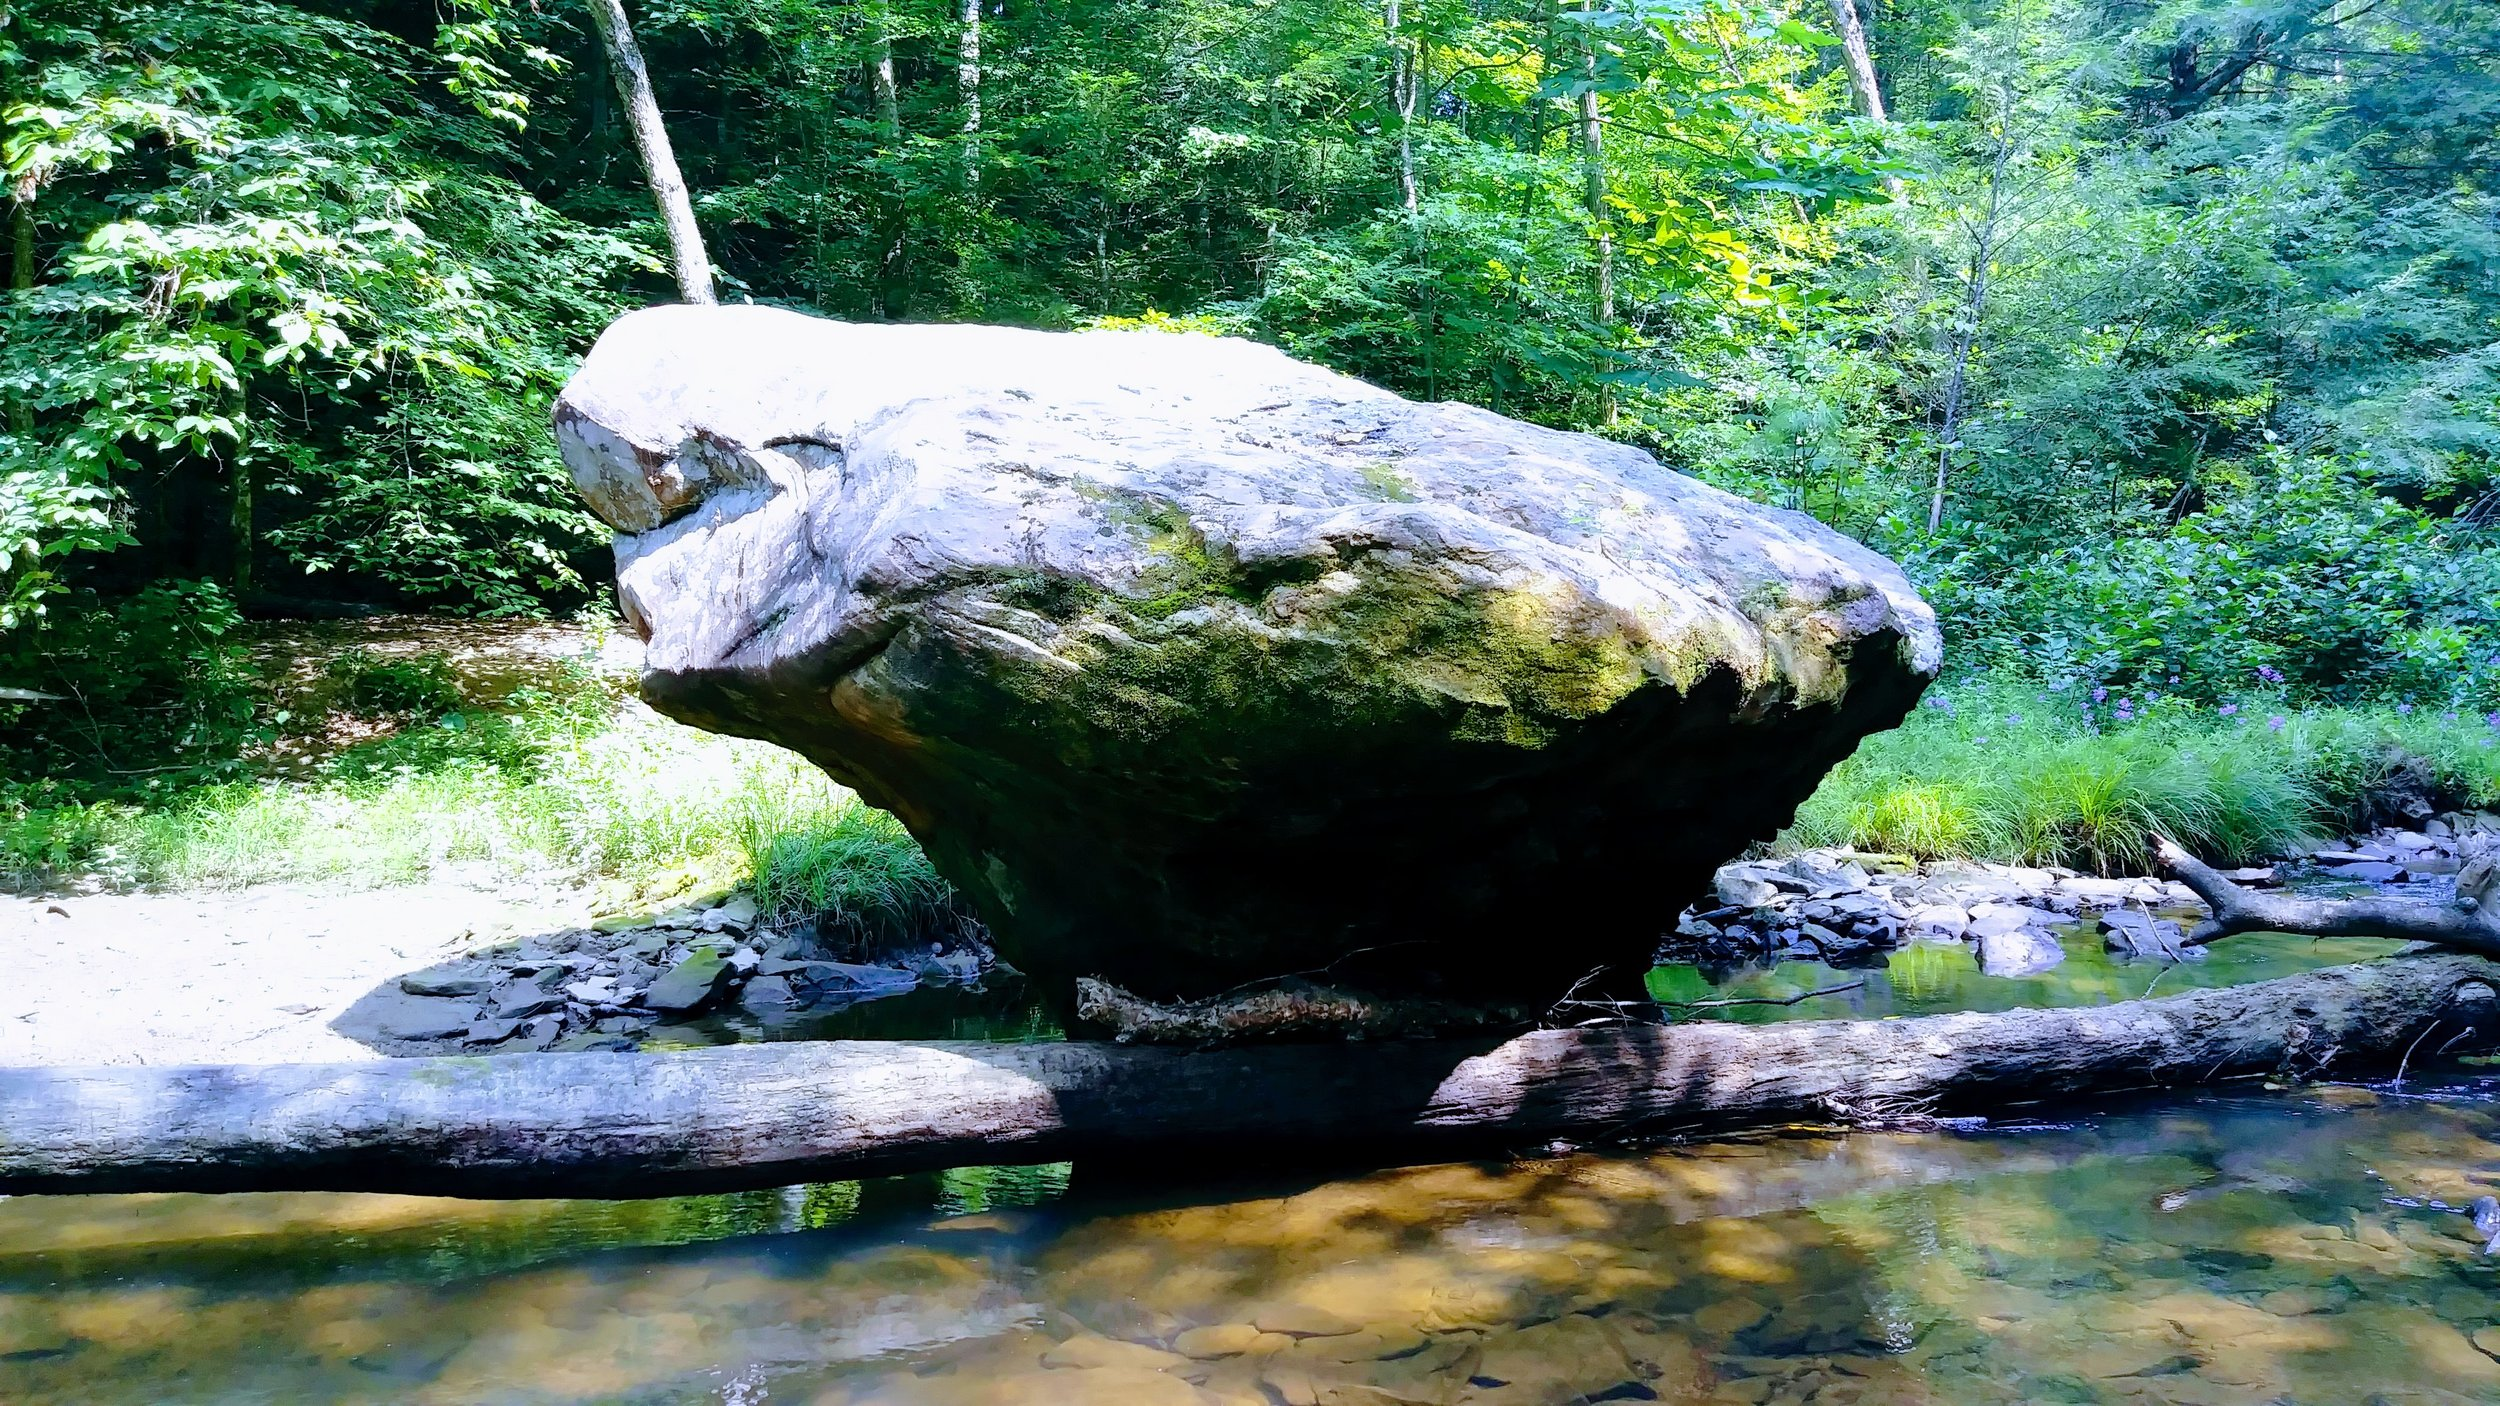 This beautiful rock can be found just off Swift Camp Creek Trail near a large waterside backcountry camping area - look for it when you first descend to the creek.